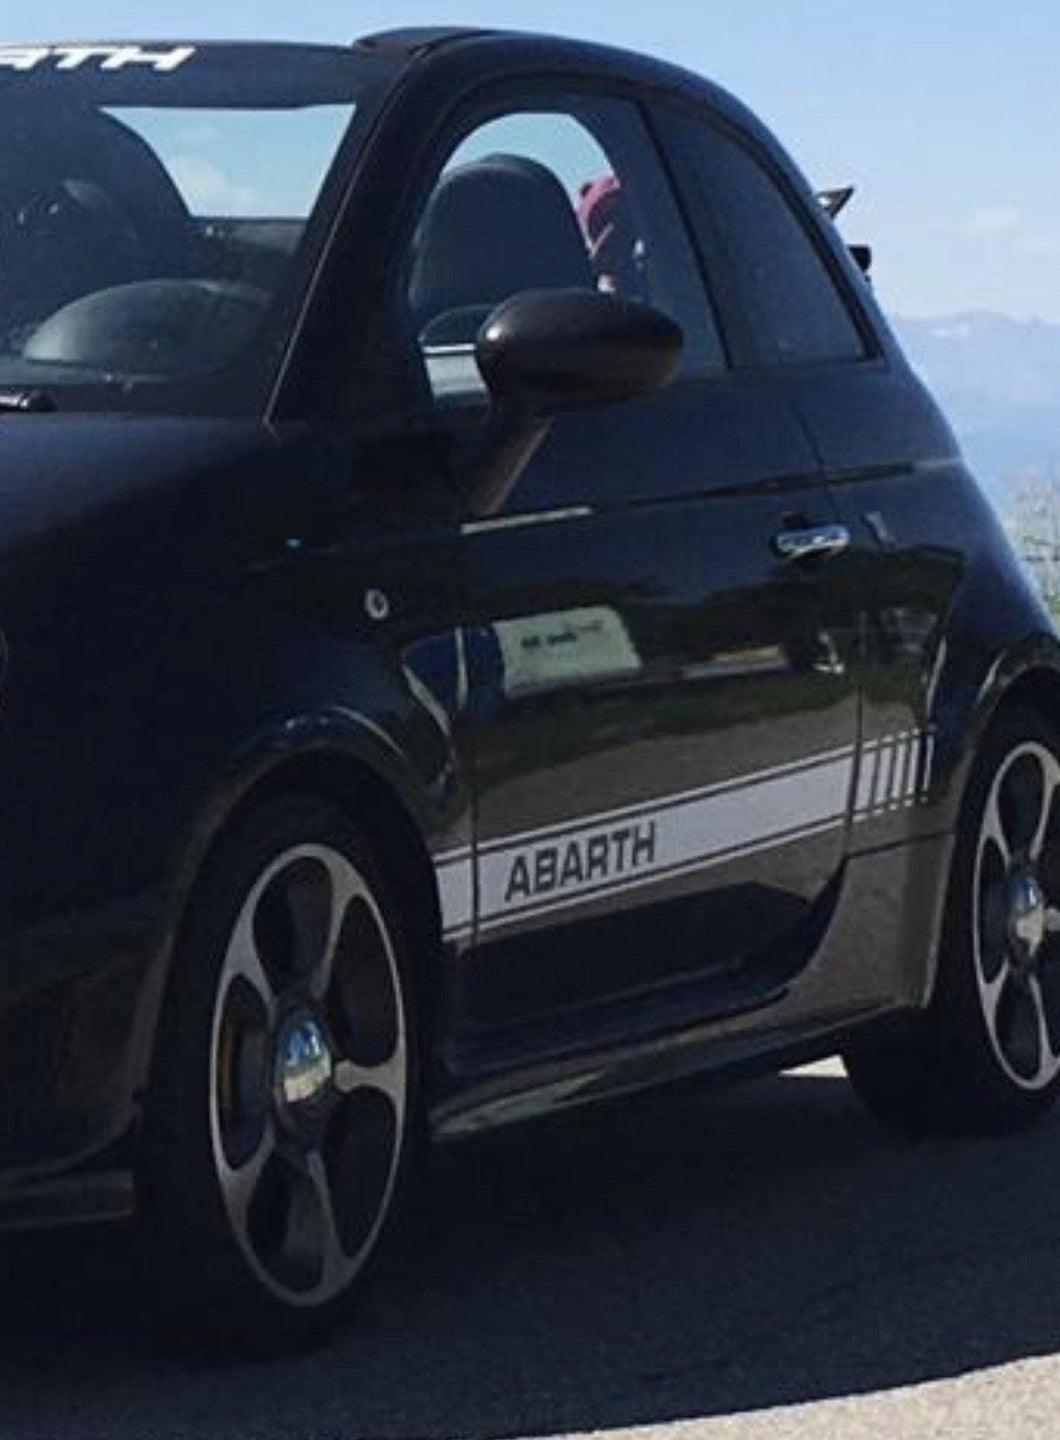 Abarth stripes, Series 4 stock look version.